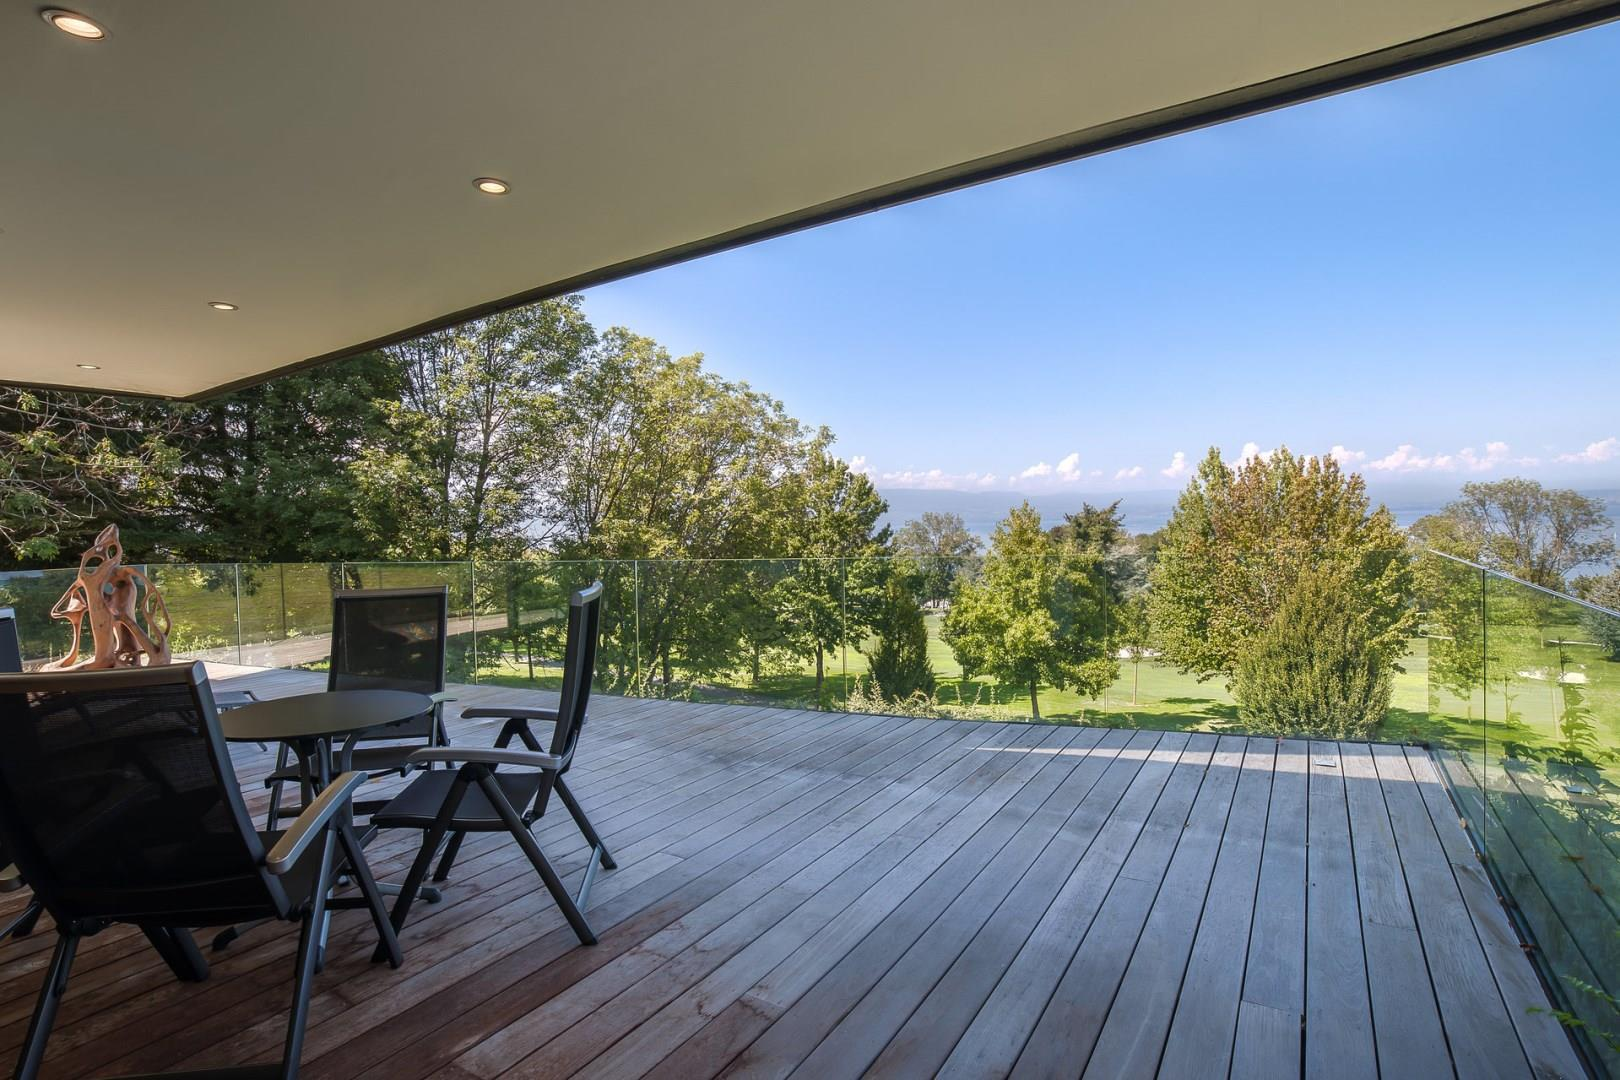 Modern villa in the resort town of Evian-les-Bains, France